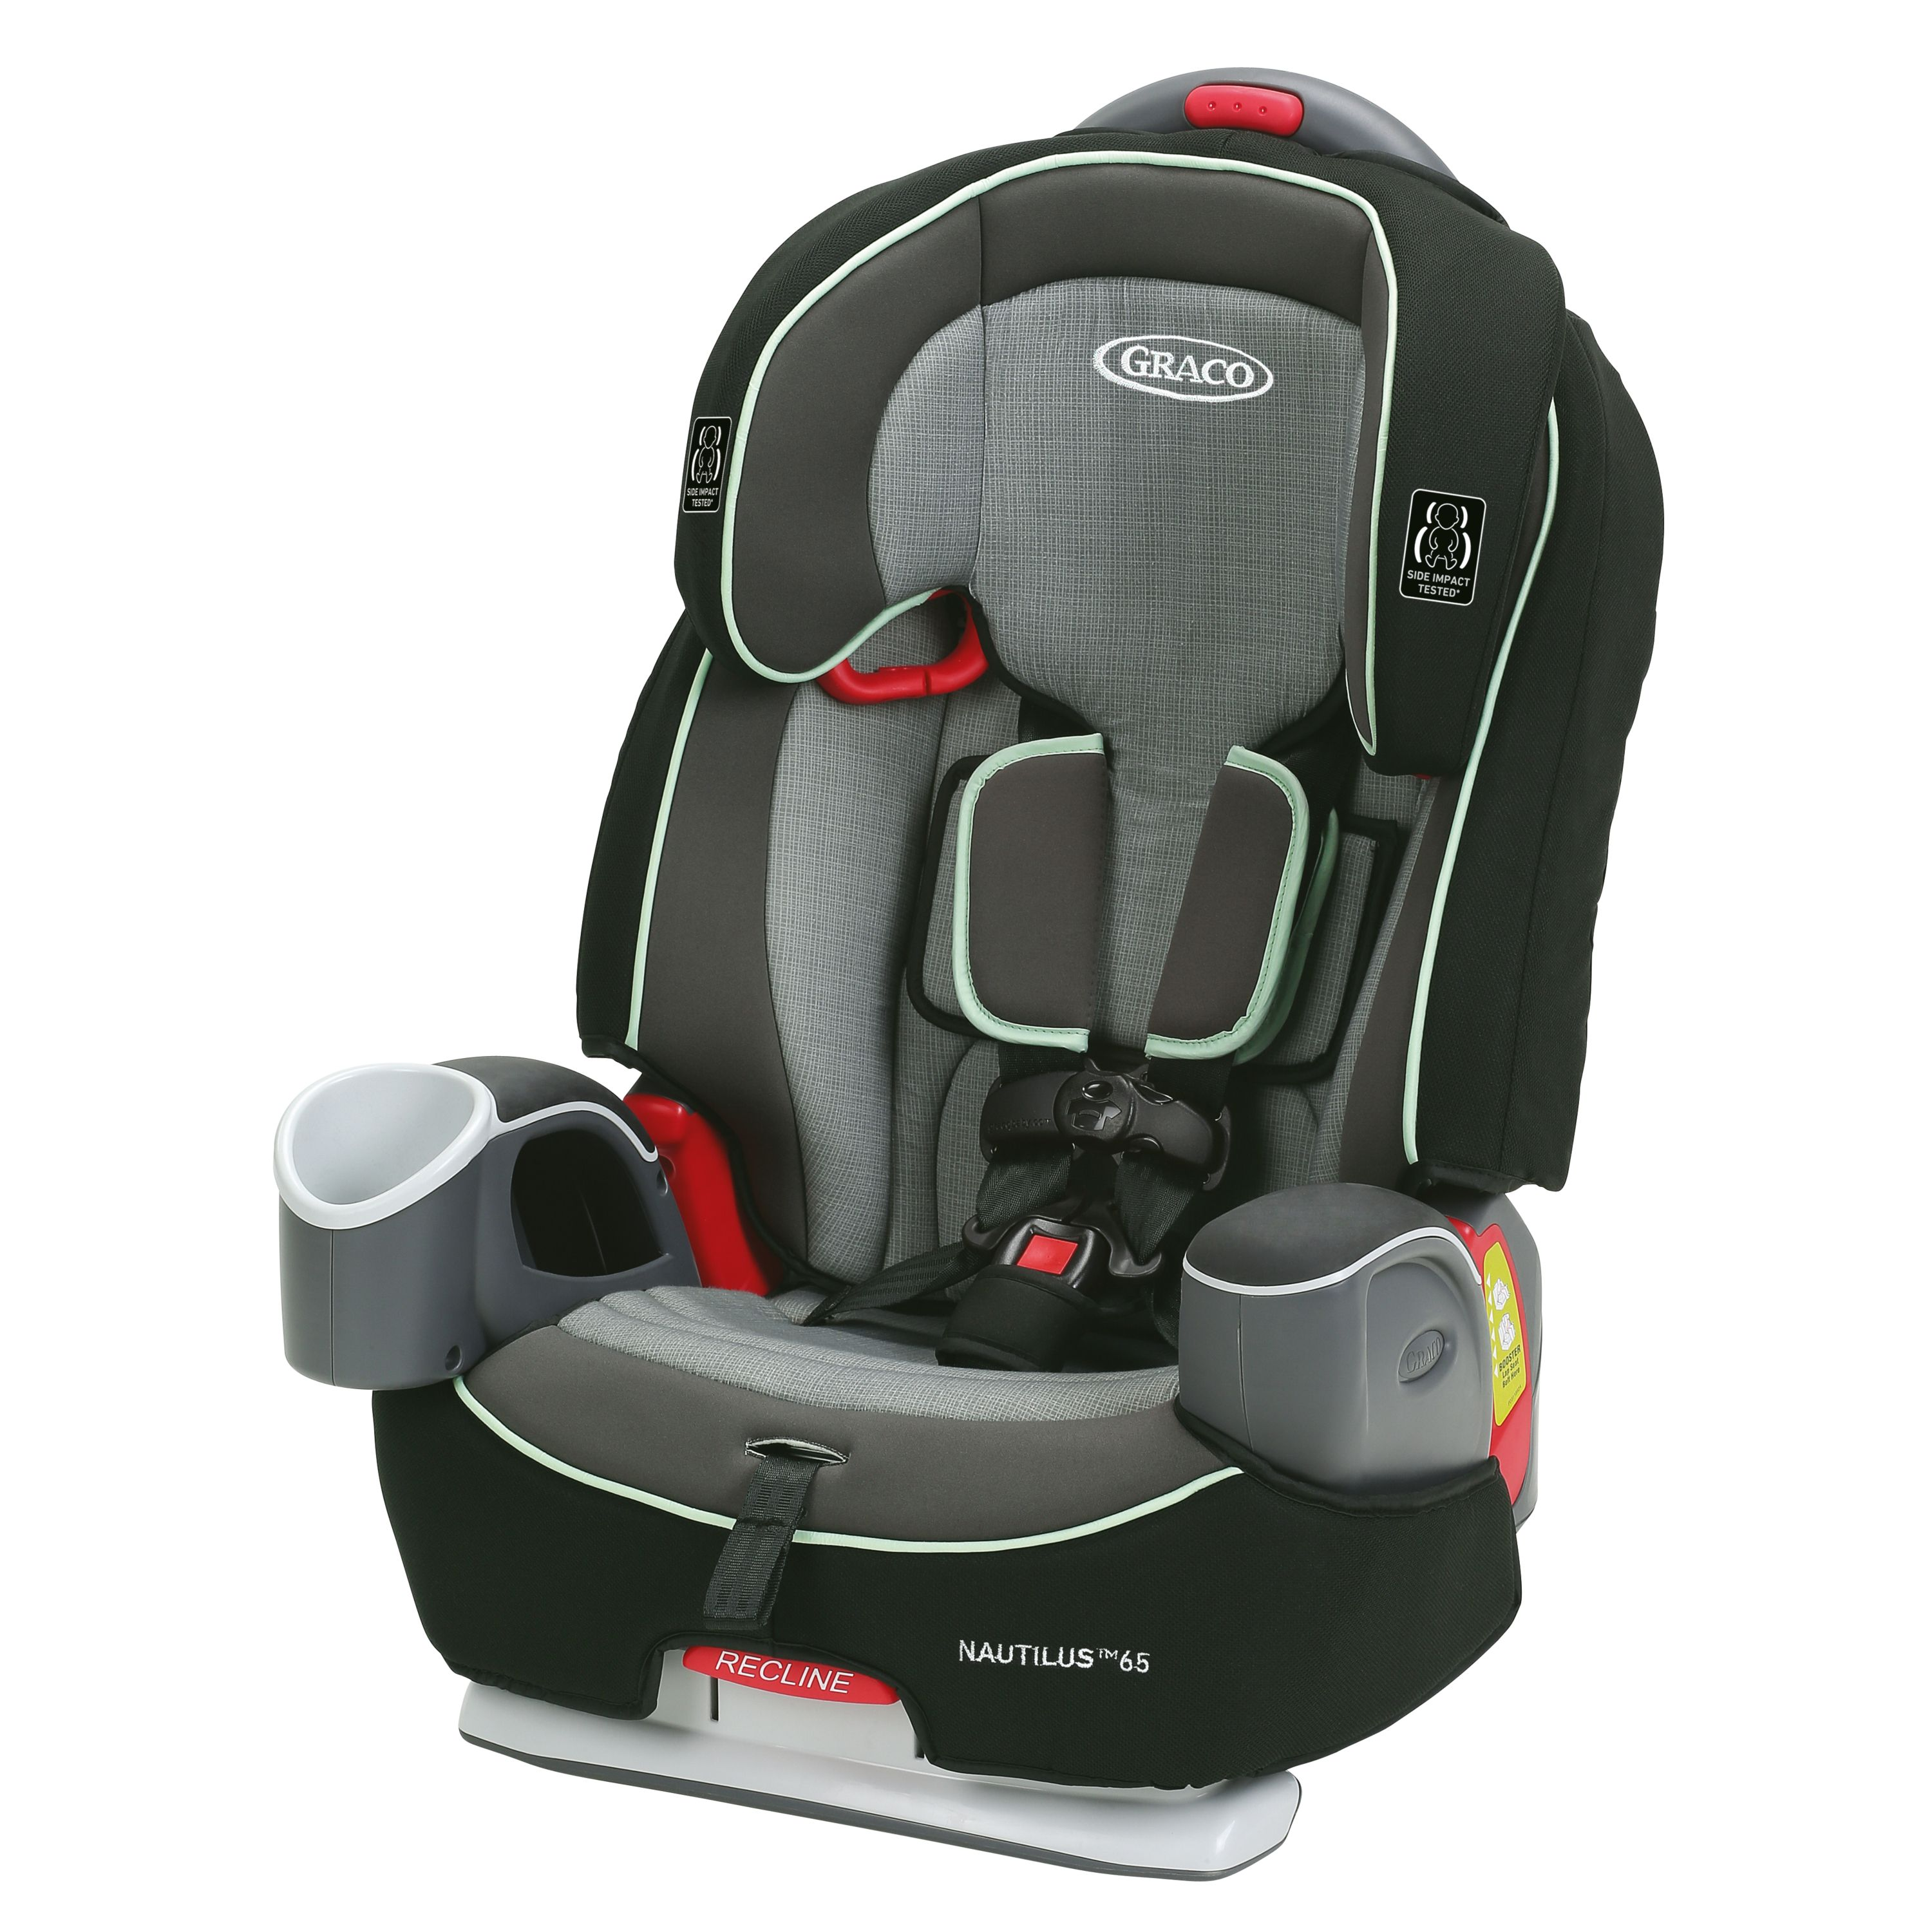 Graco Nautilus 65 3-in-1 Harness Booster